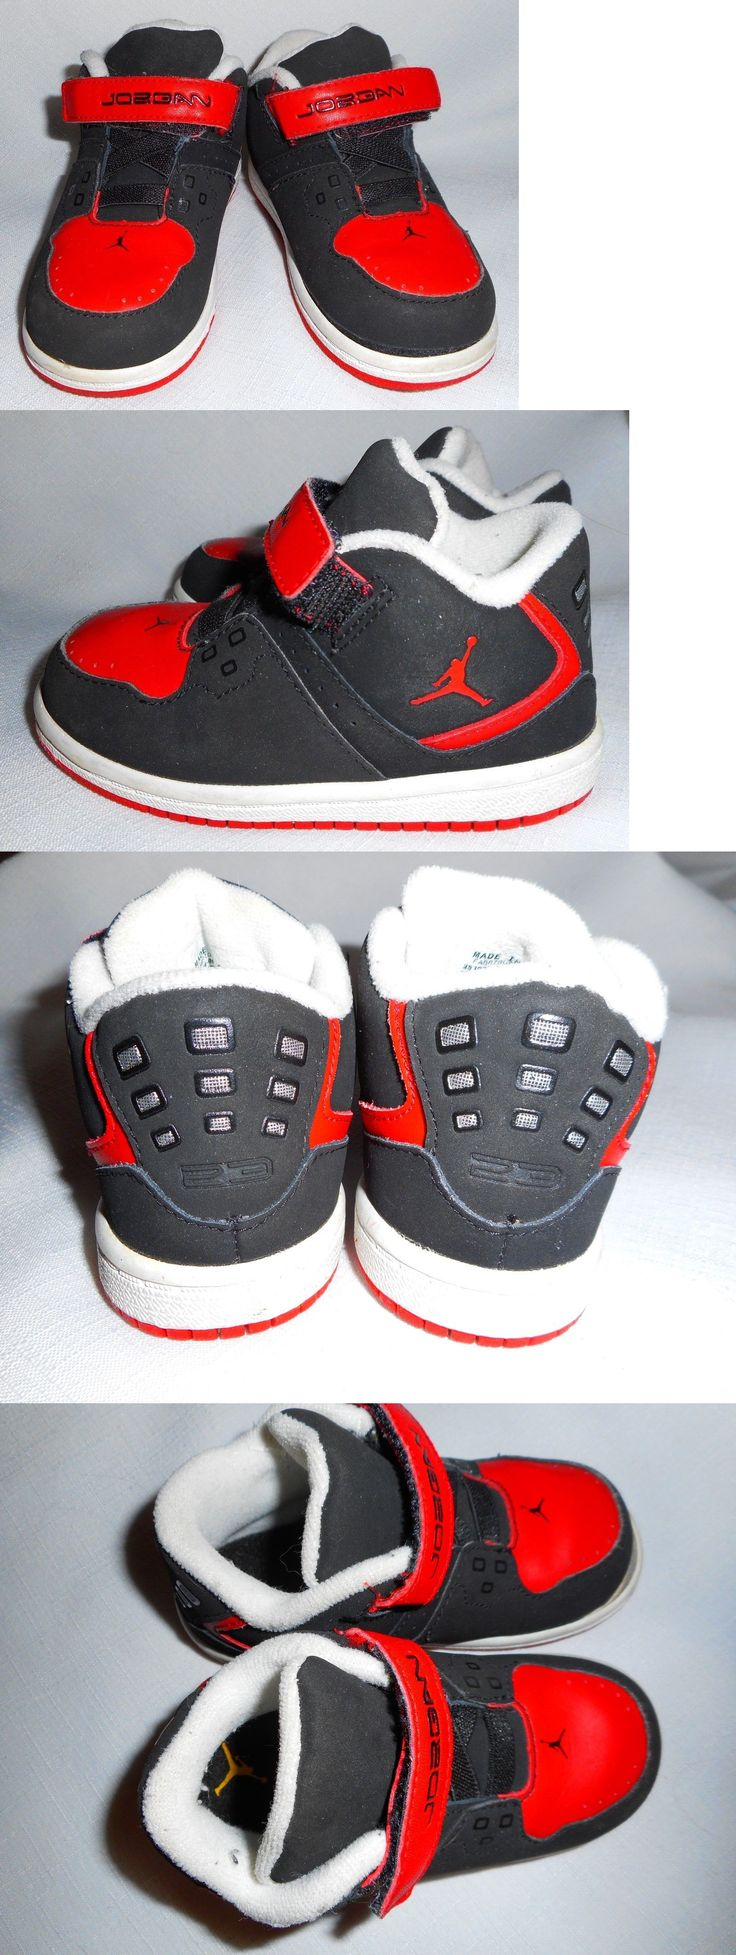 Michael Jordan Baby Clothing: Michael Jordan Nike Toddler Boys Mid Top Faux Black Suede And Red Shoes-Siz 7C-Euc BUY IT NOW ONLY: $19.99